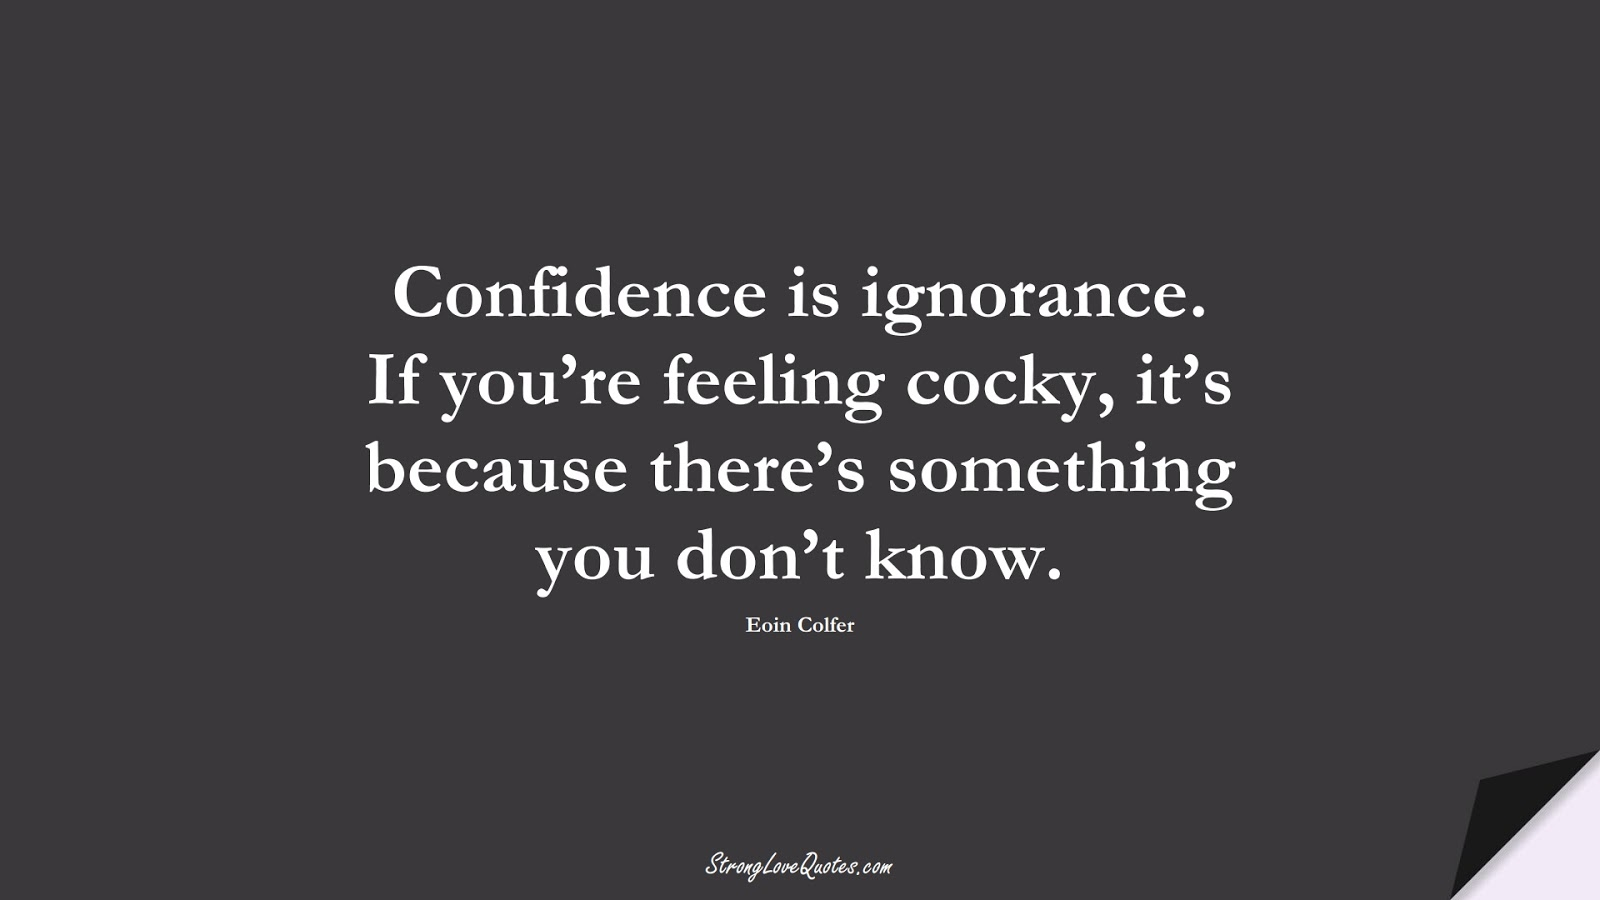 Confidence is ignorance. If you're feeling cocky, it's because there's something you don't know. (Eoin Colfer);  #KnowledgeQuotes